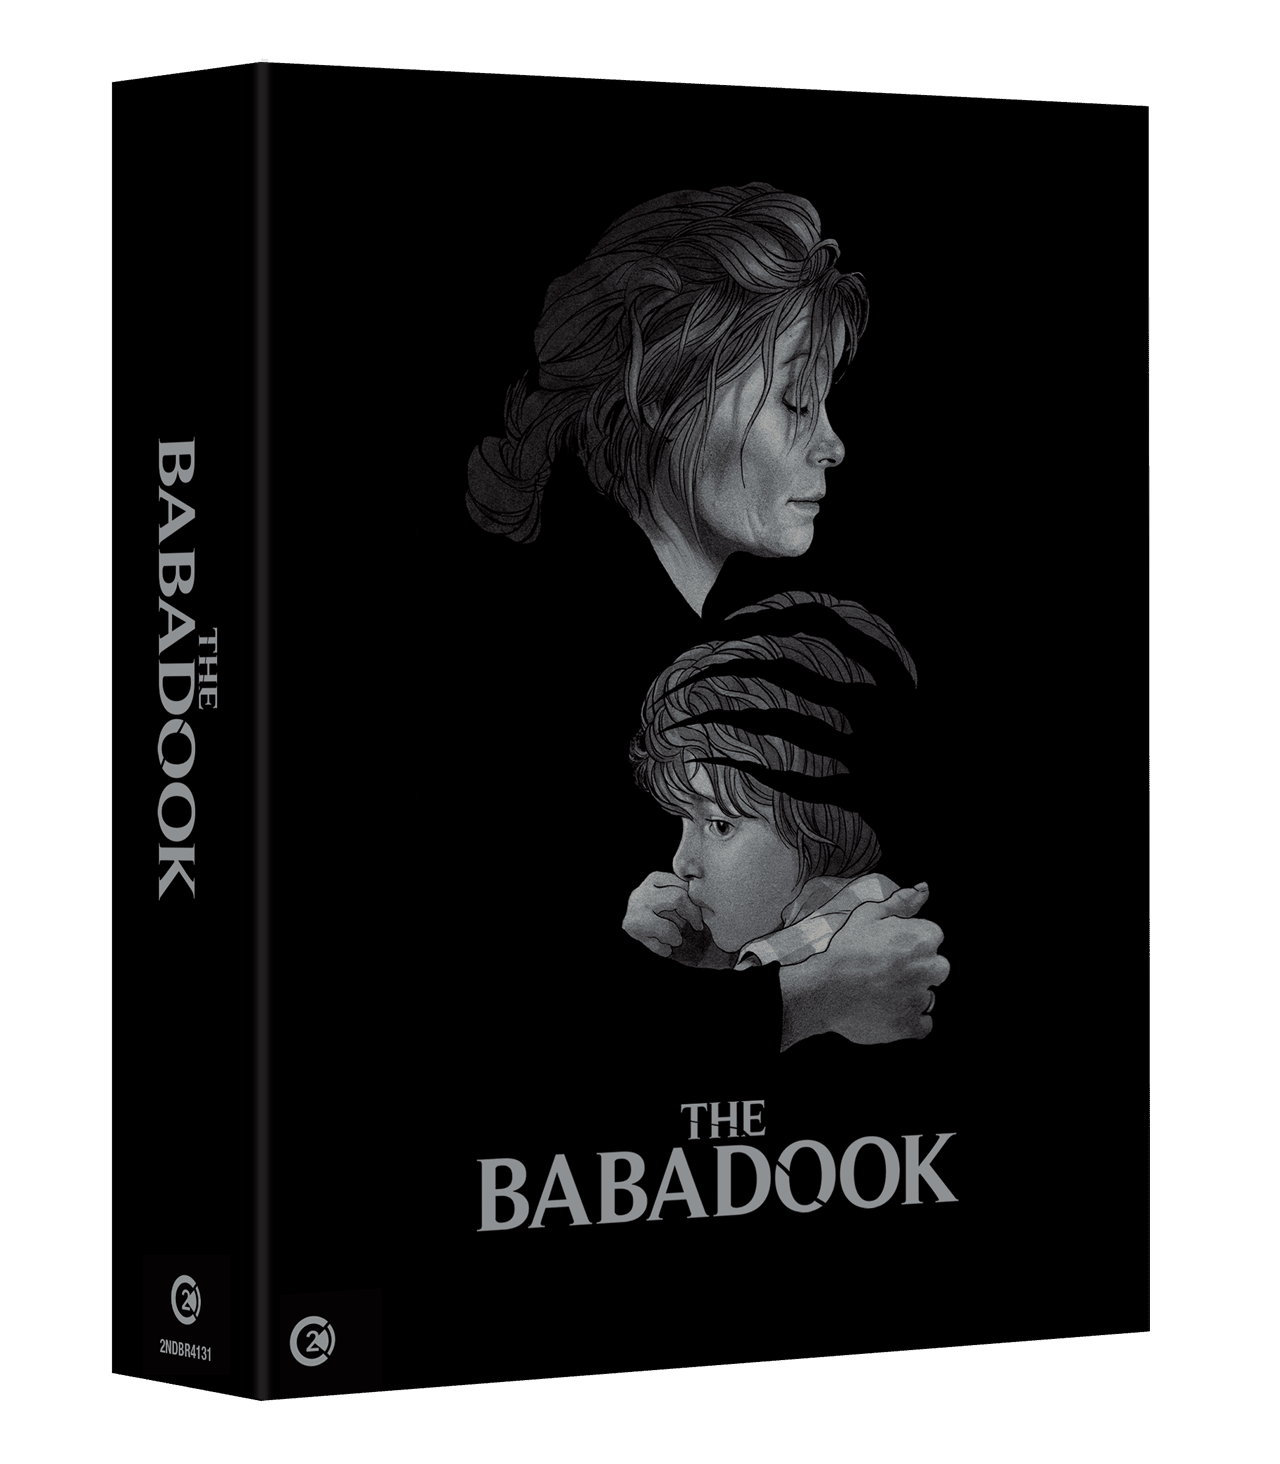 The Babadook Limited Collector's Edition - 2